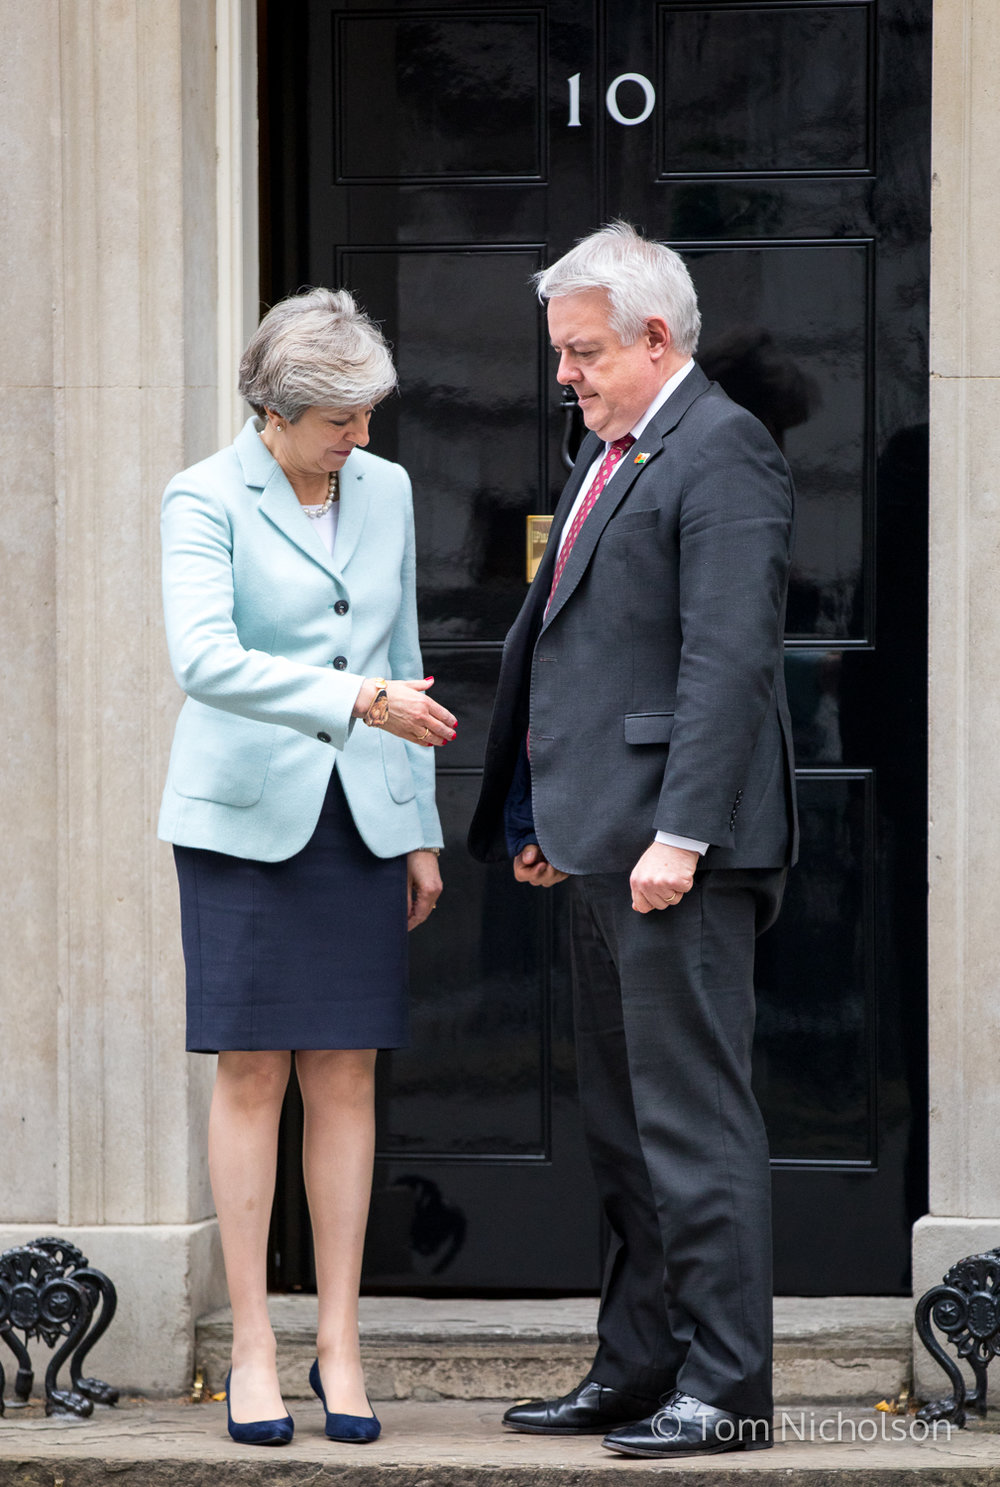 ©2017 Tom Nicholson. 30/10/2017. London, UK. British Prime Minister Theresa May meets First Minister of Wales Carwyn Jones on the doorstep of 10 Downing Street